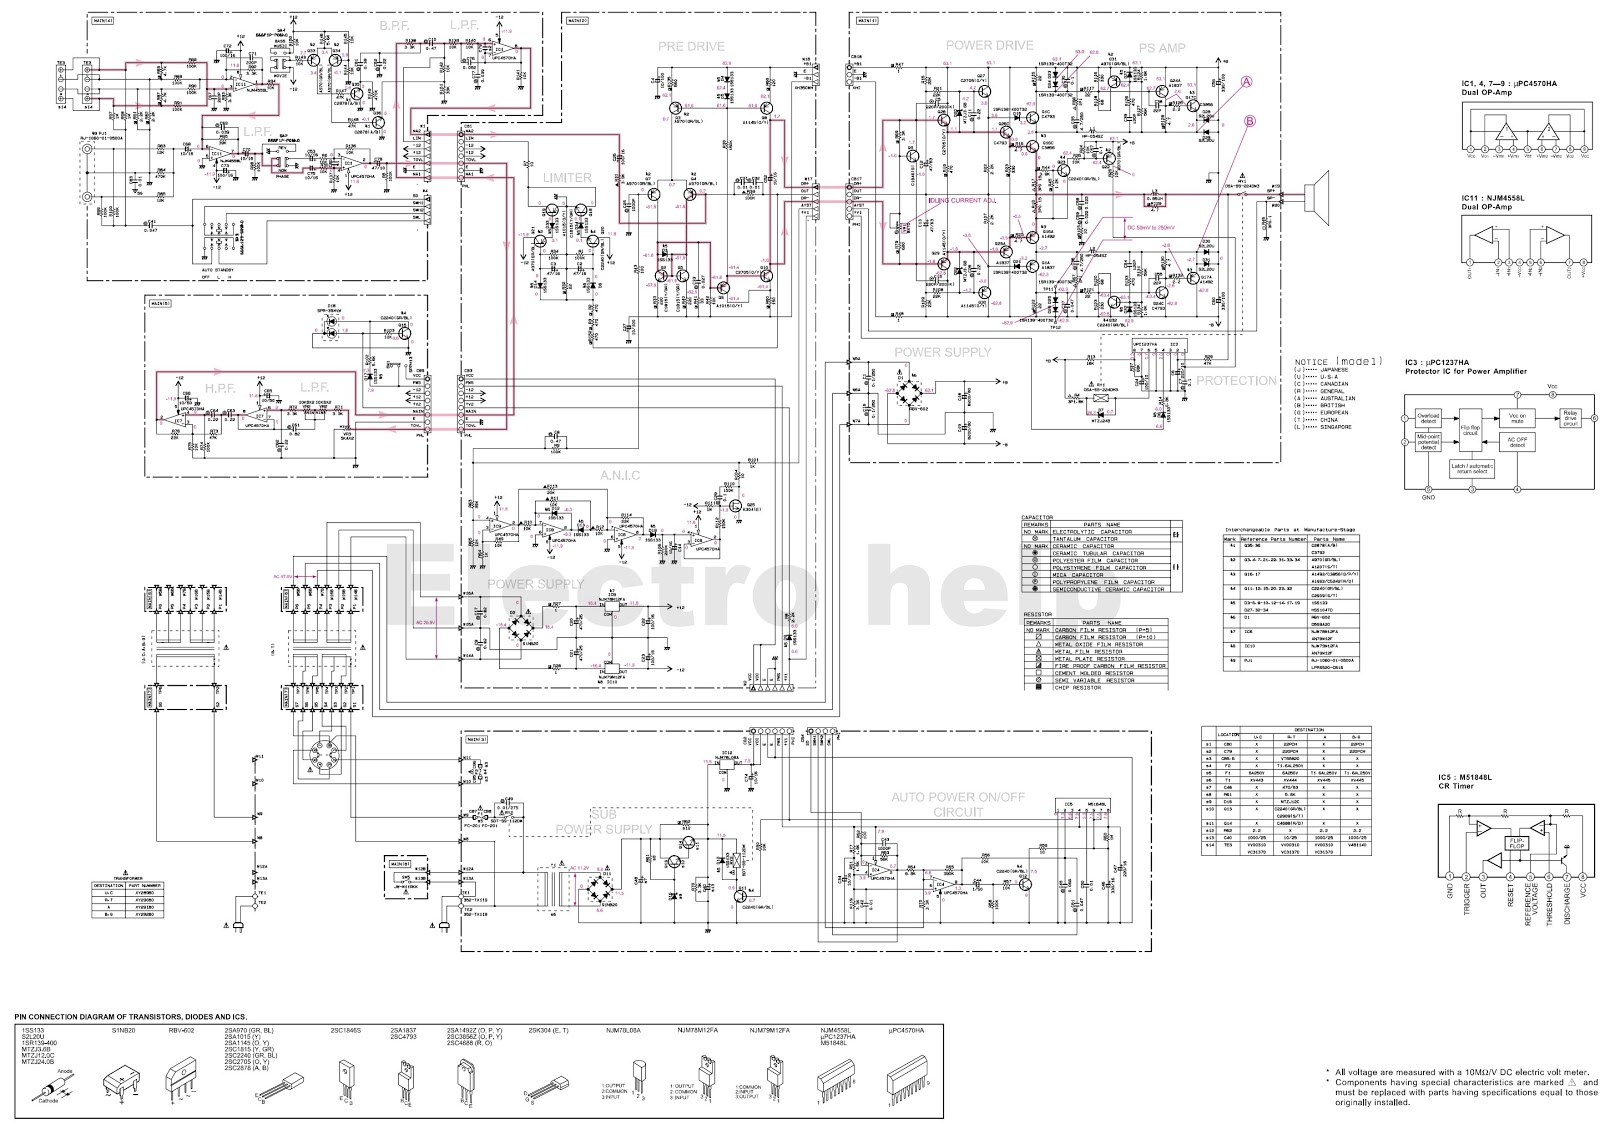 rv trailer kes wiring diagram wiring diagram advance rv trailer kes wiring diagram [ 1600 x 1129 Pixel ]